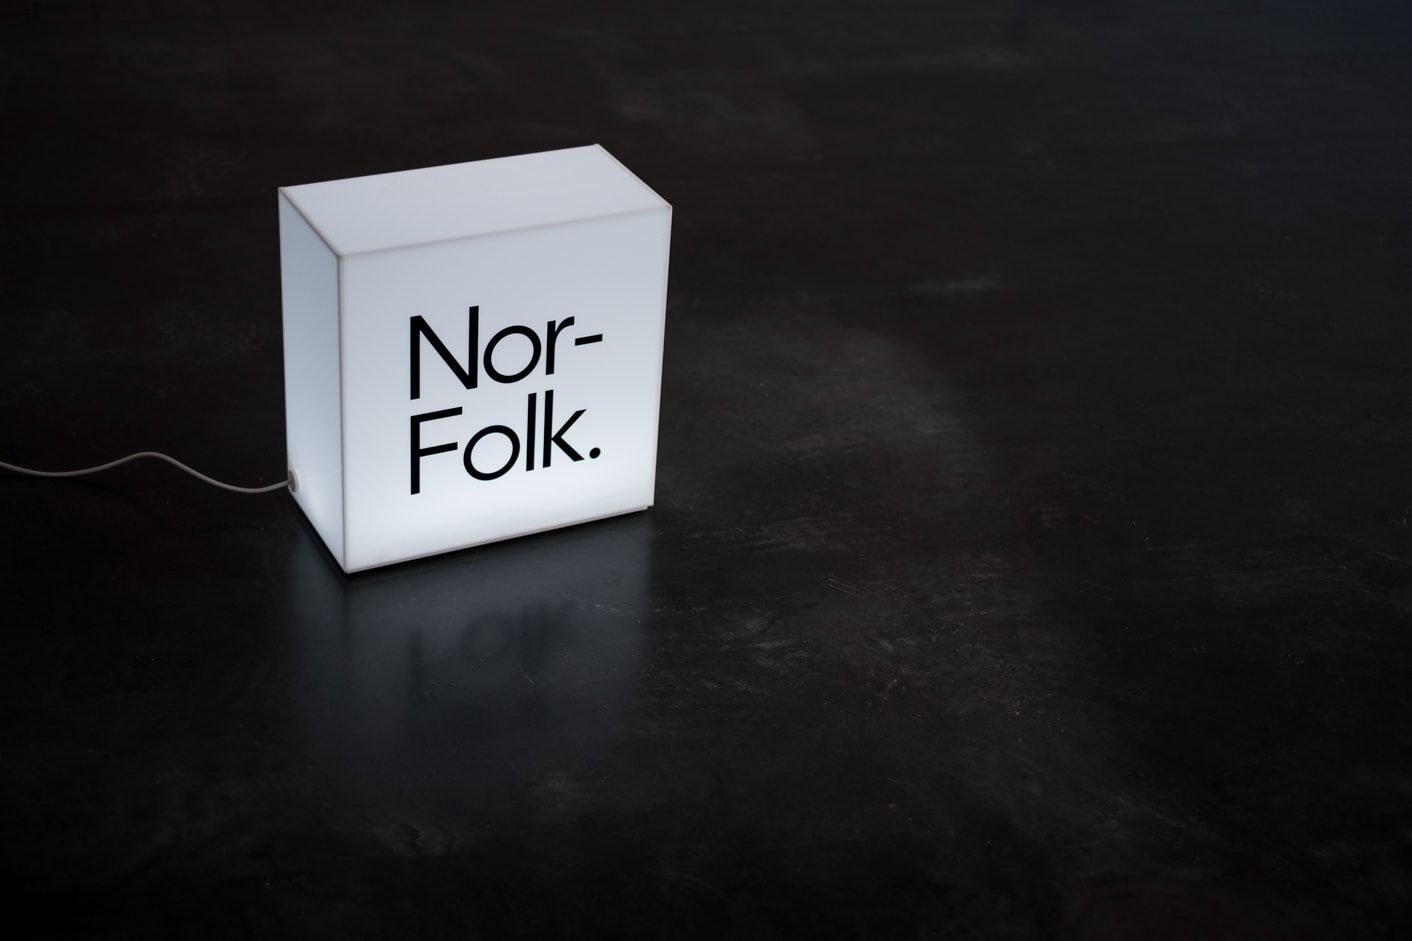 Nor-Folk branded light box sign